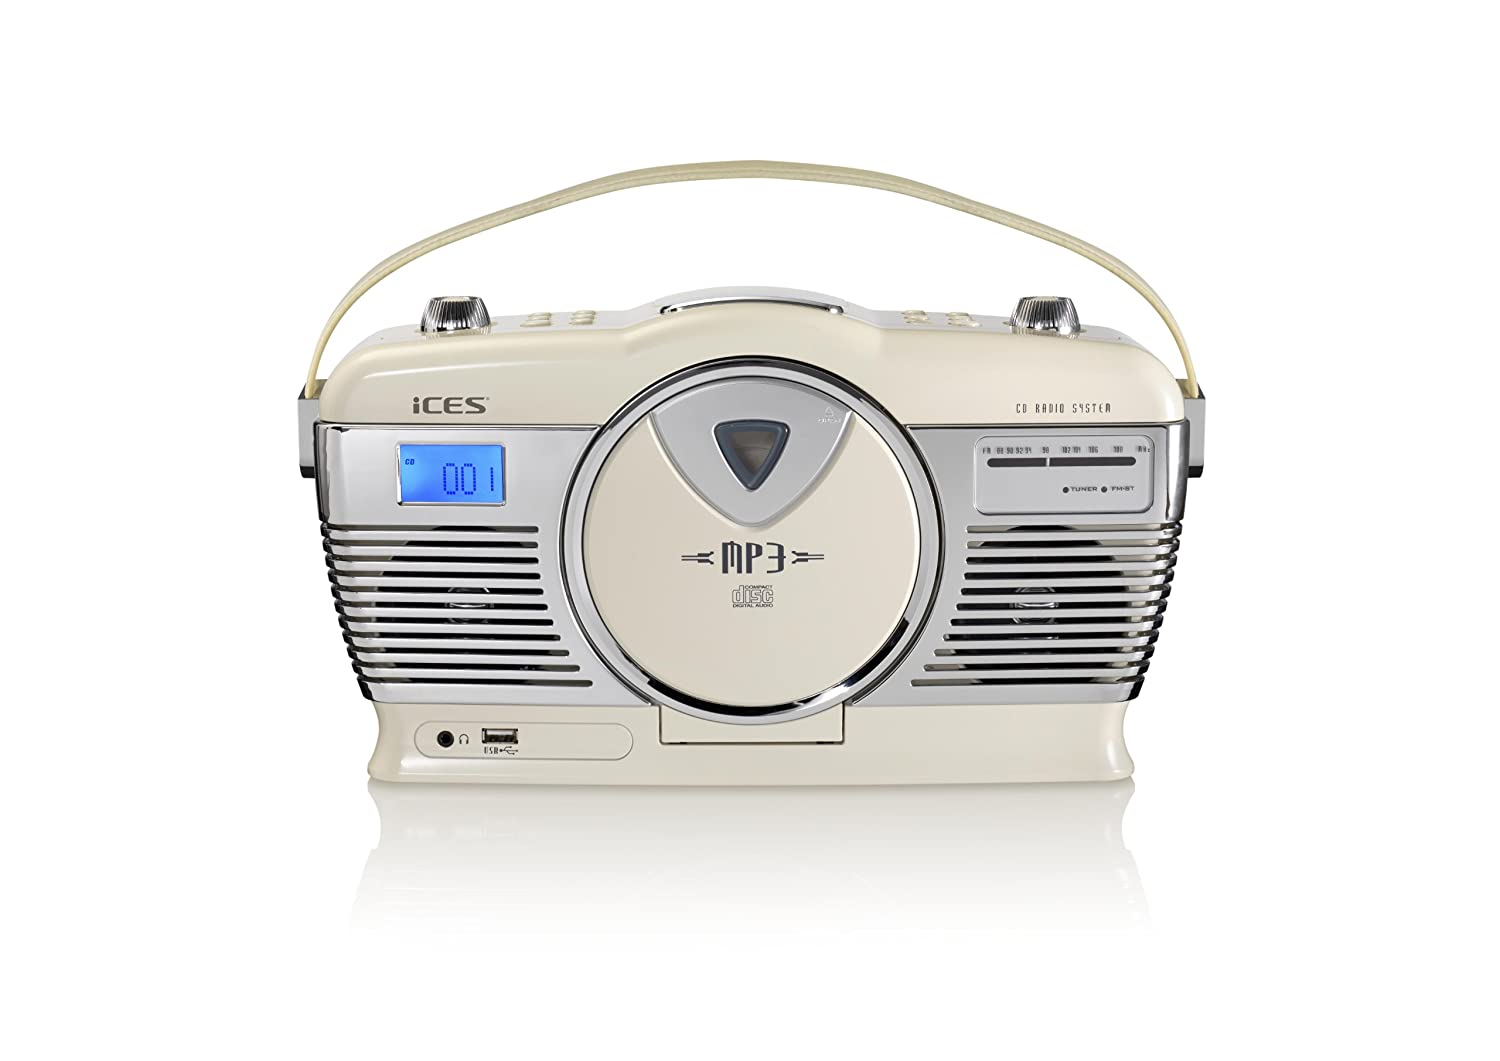 House Doctor Kussen : Ices iscd 33 tragbares retro radio mit cd mp3 player usb cremeweiß